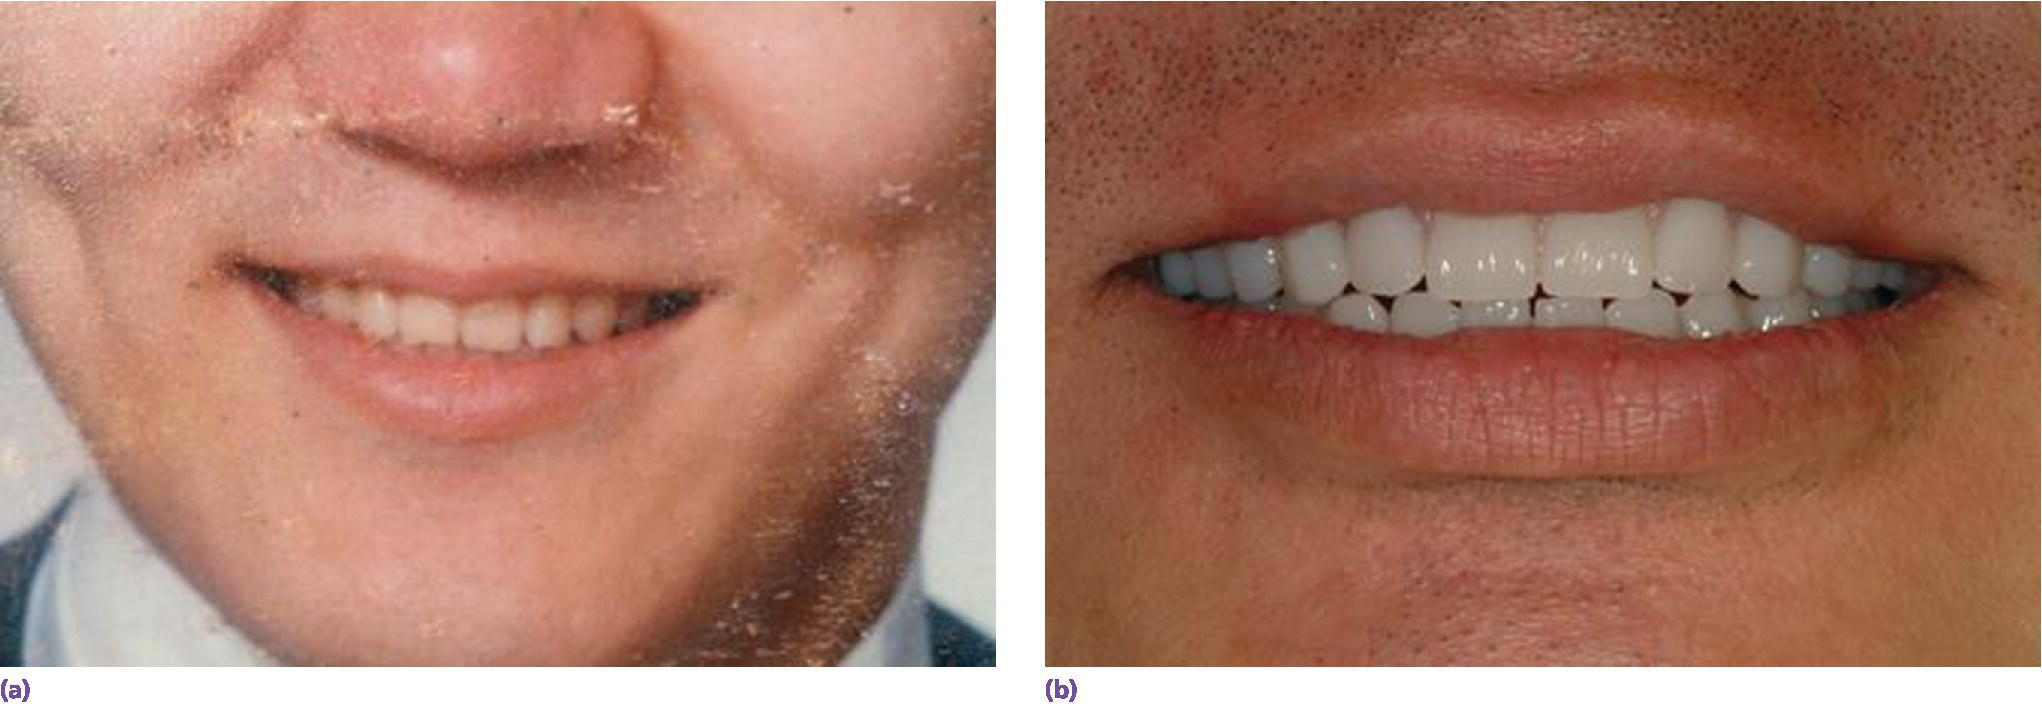 Photos displaying man smiling denoting high school graduation photo of patient with desired esthetics(left) and definitive prostheses with satisfactory lip support and achieved esthetics(right).